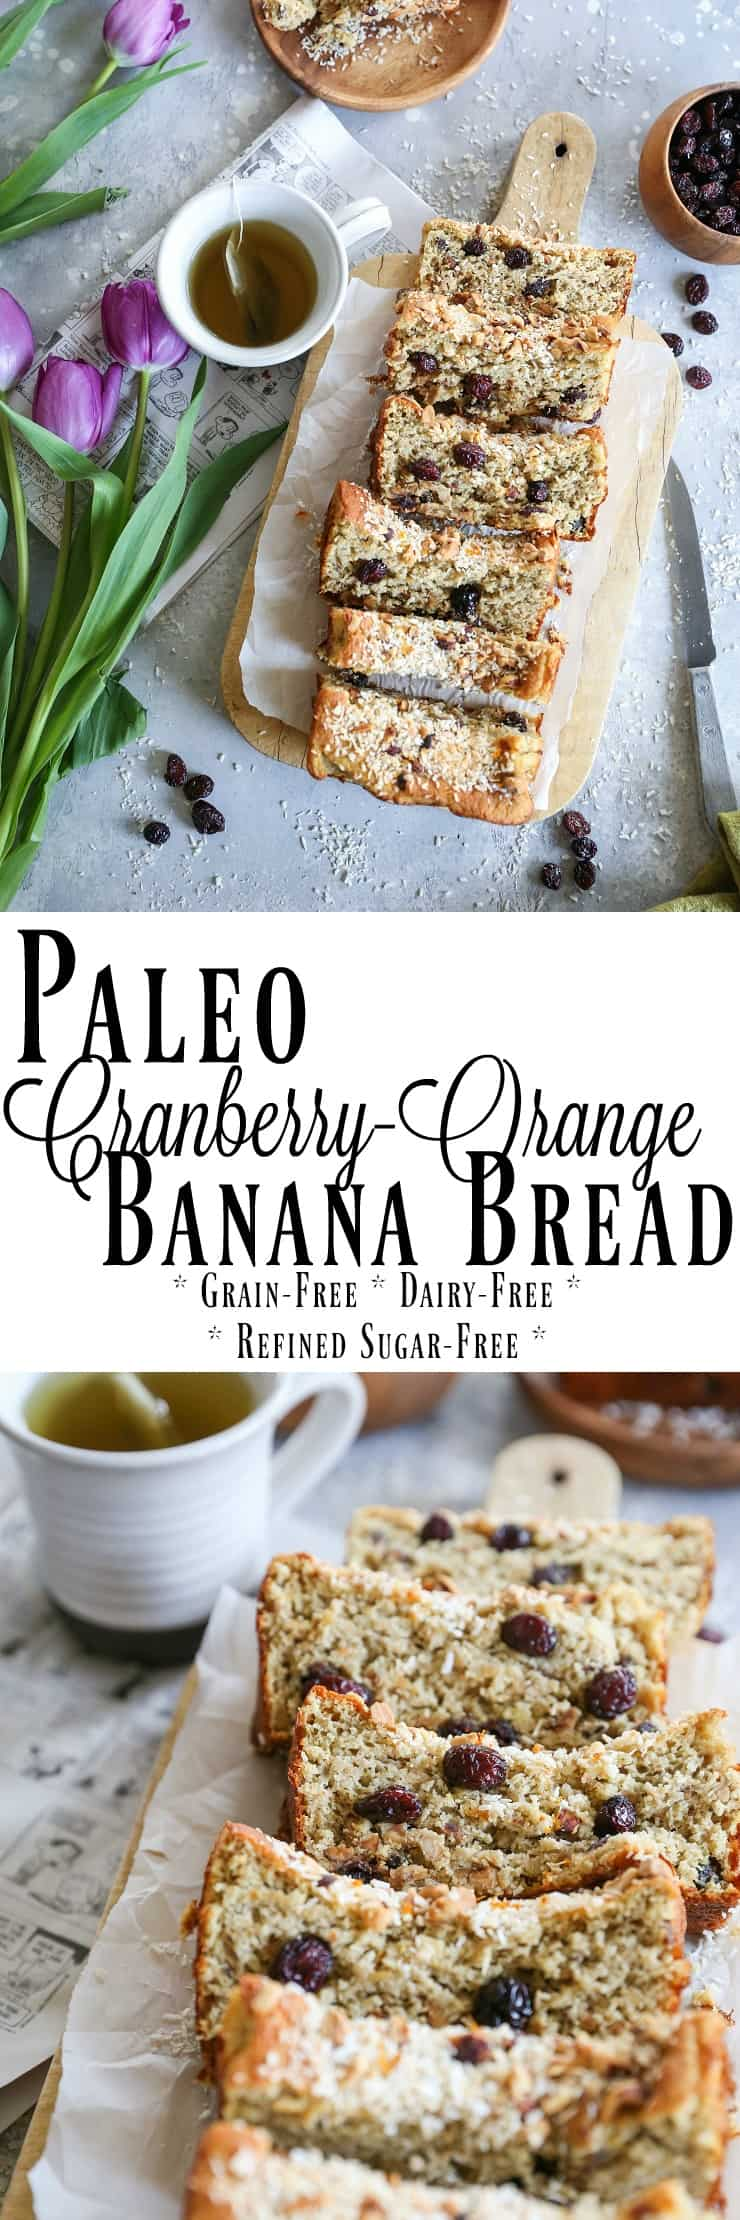 Paleo Cranberry Orange Bread made with almond flour and sweetened with bananas - this grain-free, refined sugar-free treat is perfect for breakfast or snack